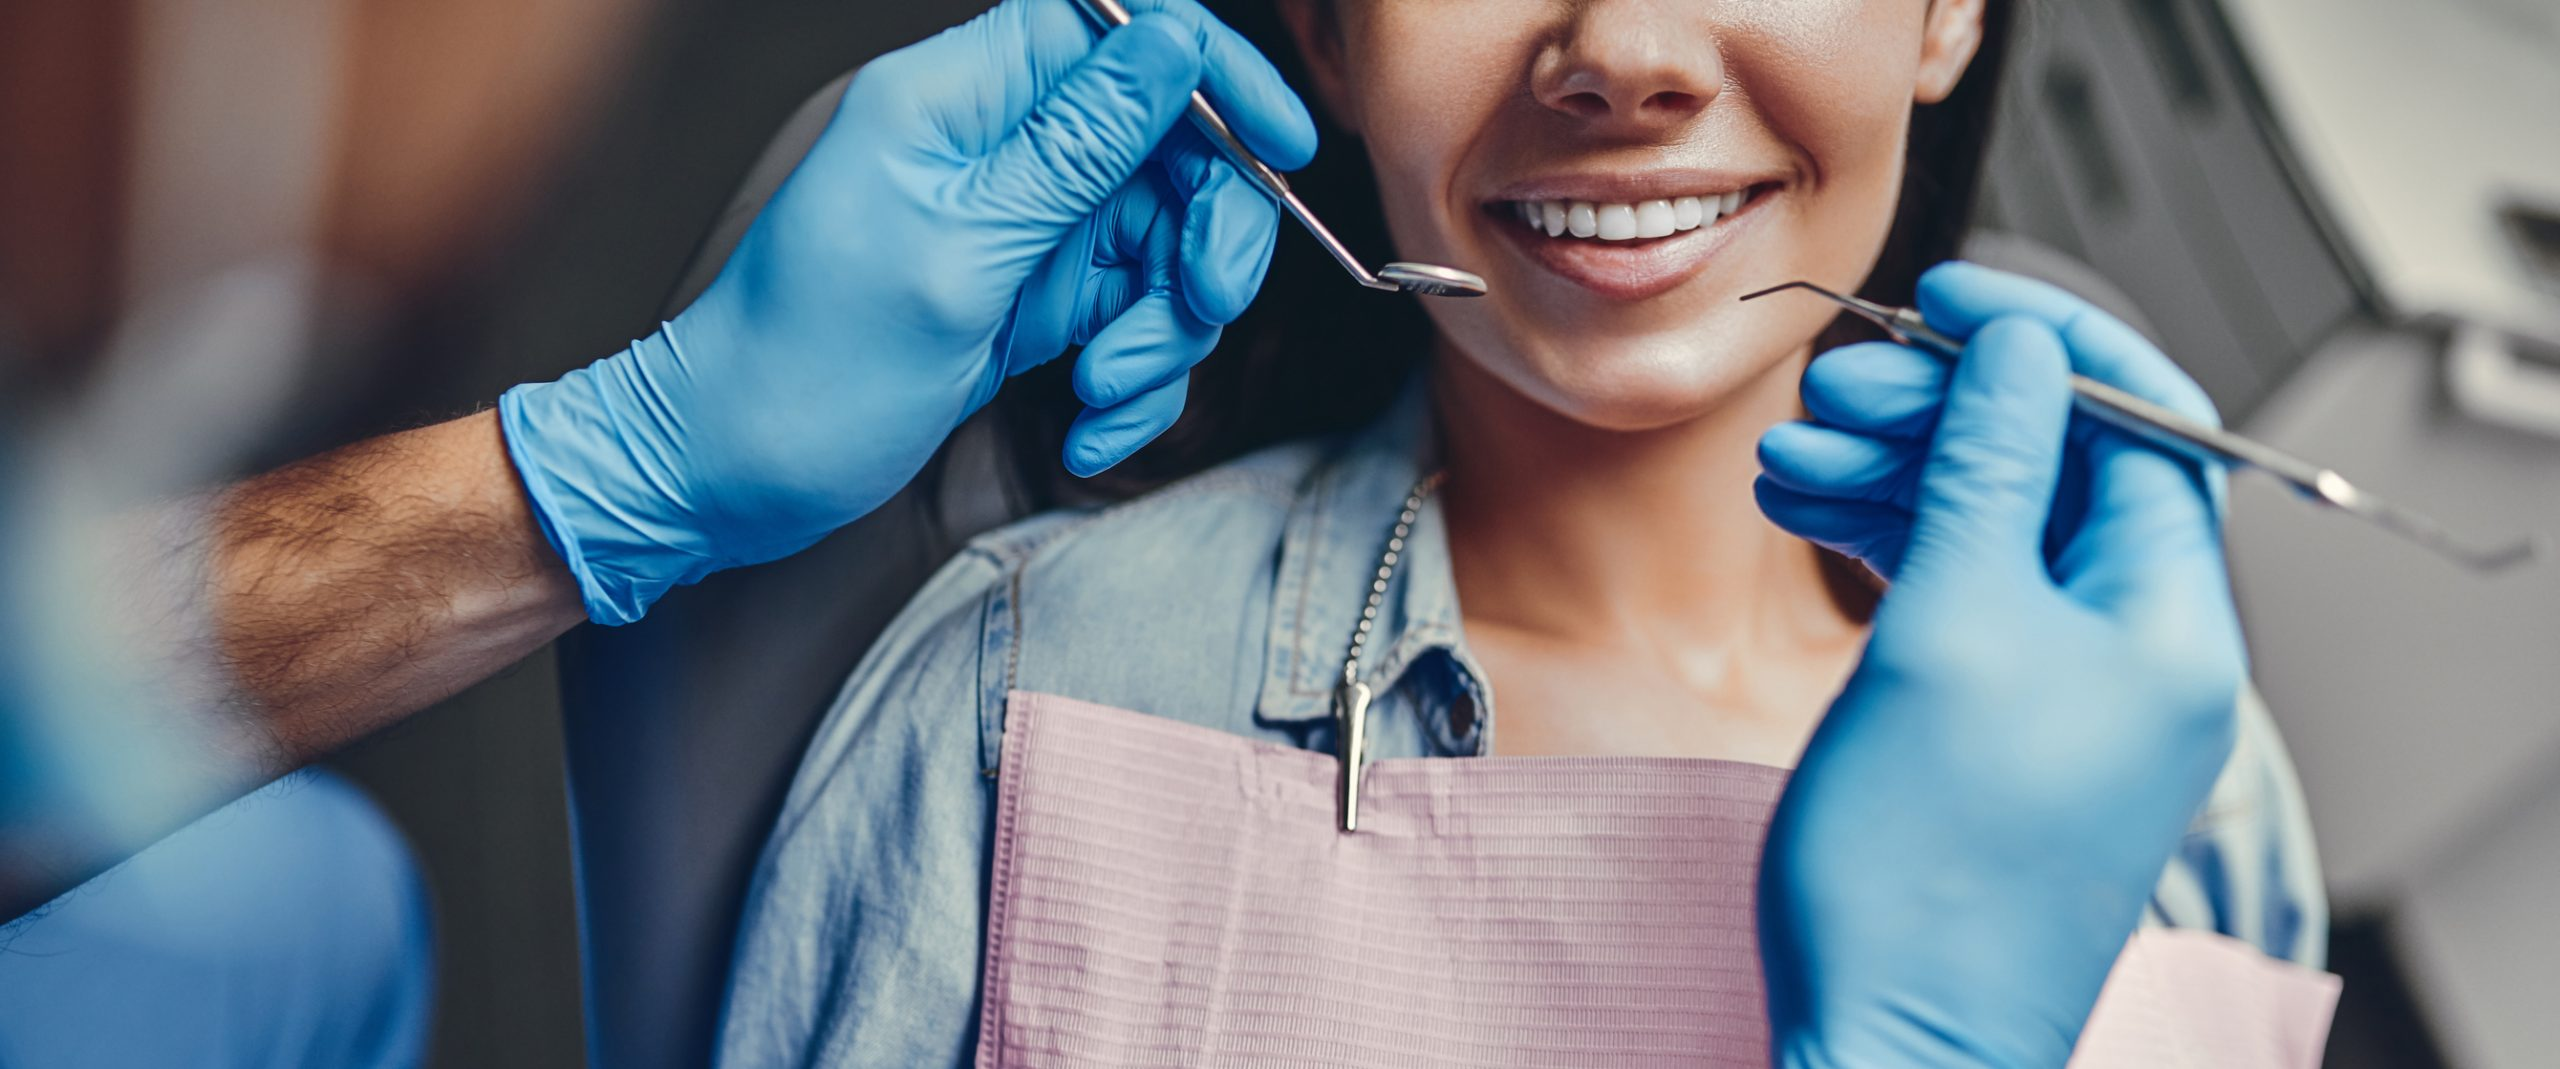 Some tips that will help you find the perfect dentist